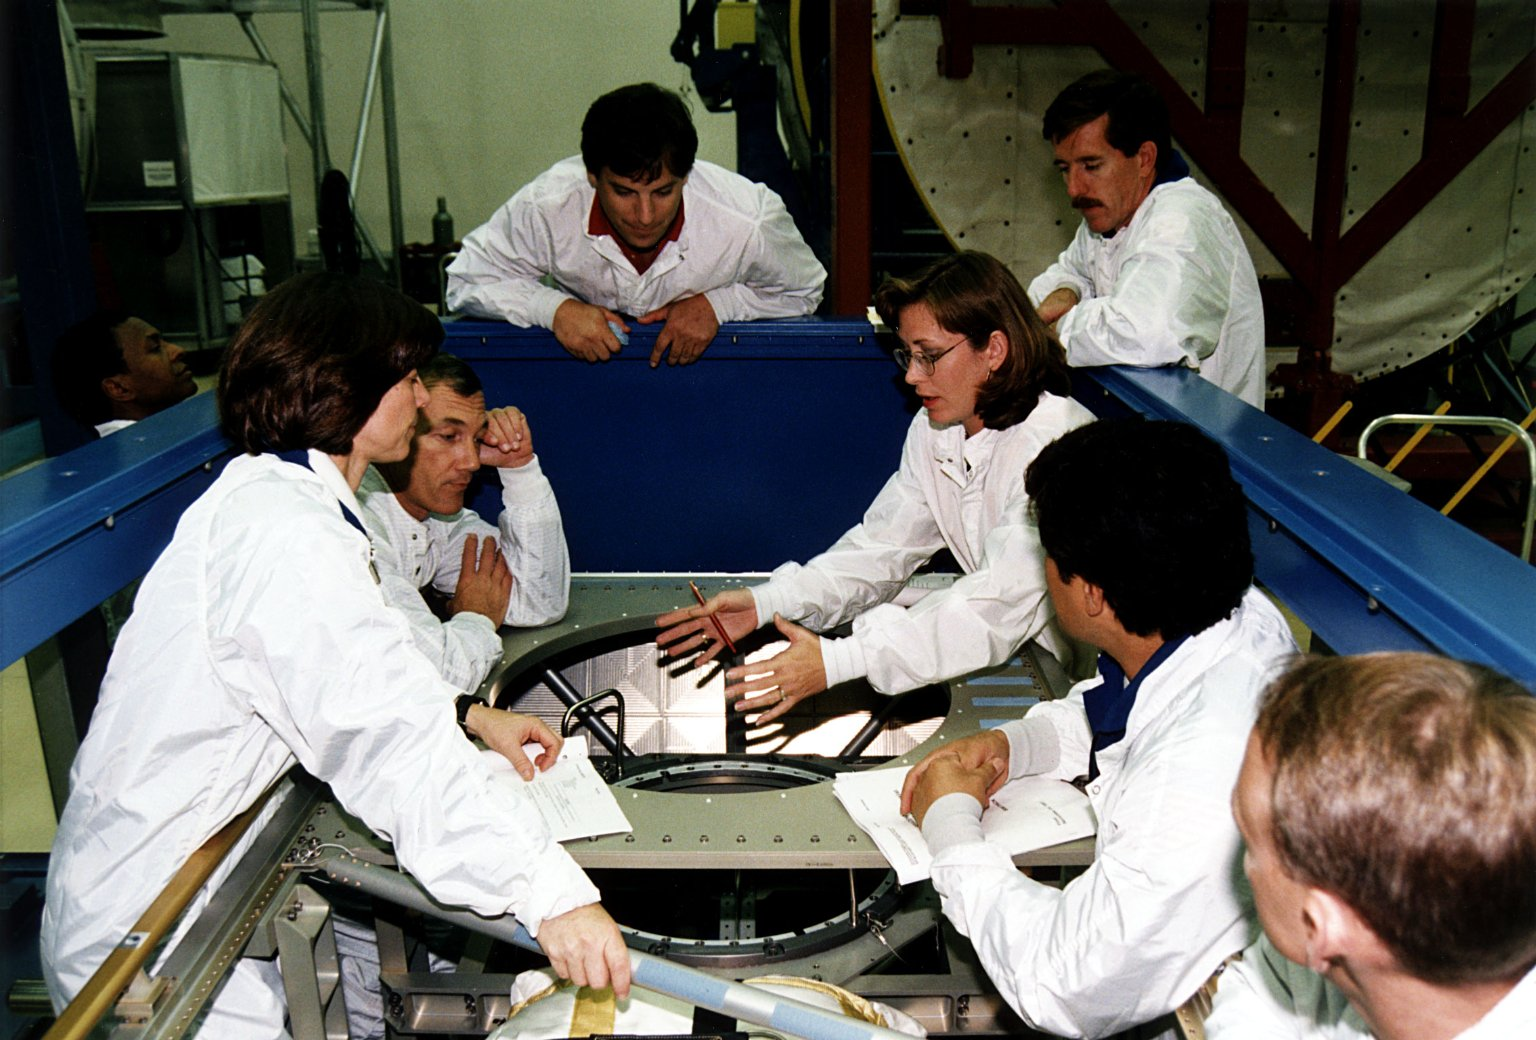 STS-89 crew and technicians participate in the CEIT